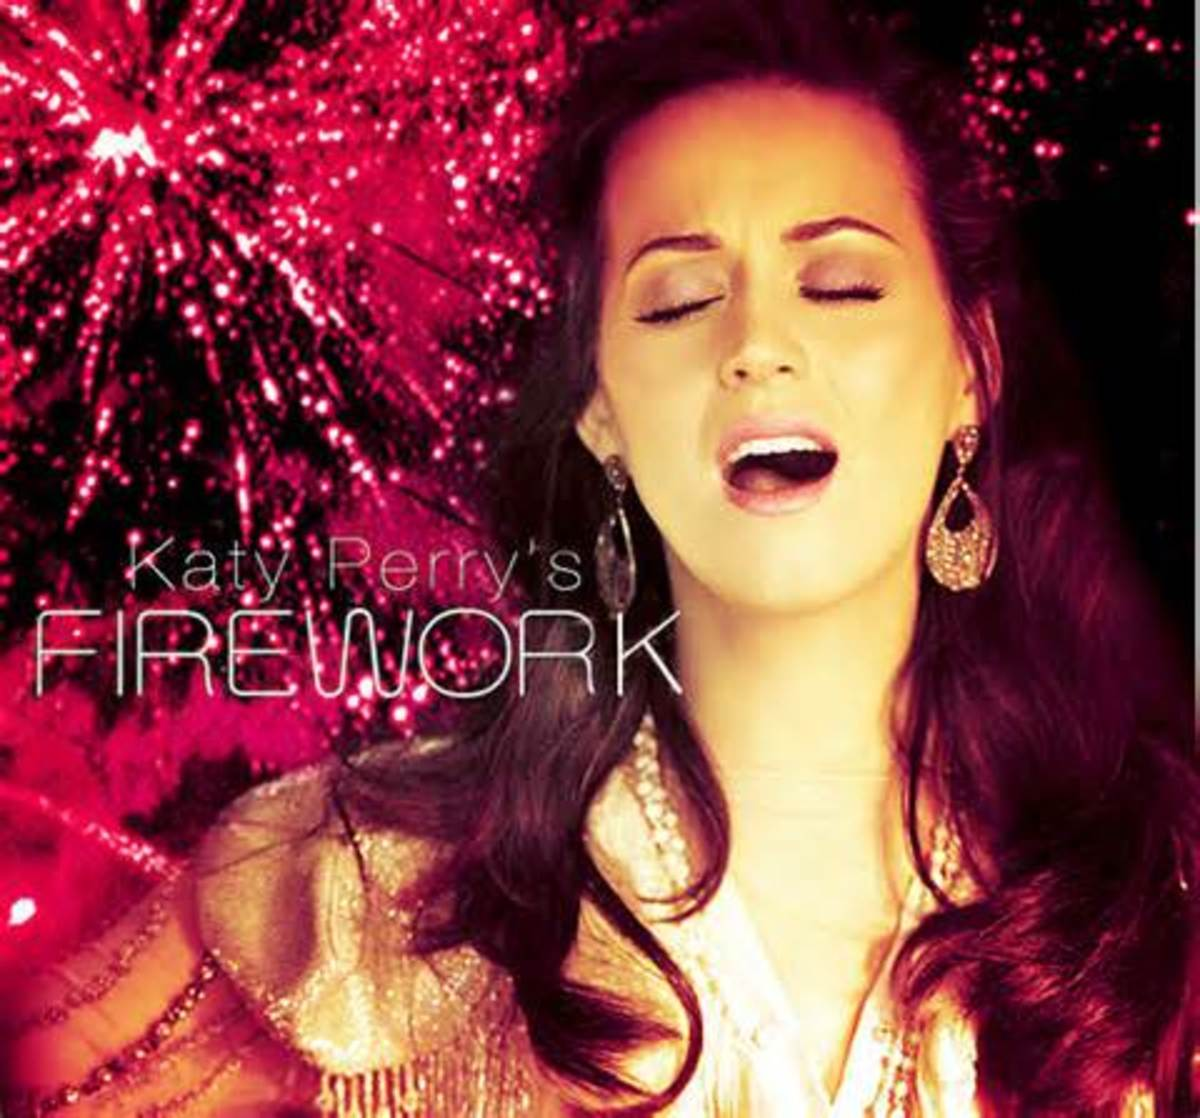 """Click on the link to listen to """"Firework"""""""